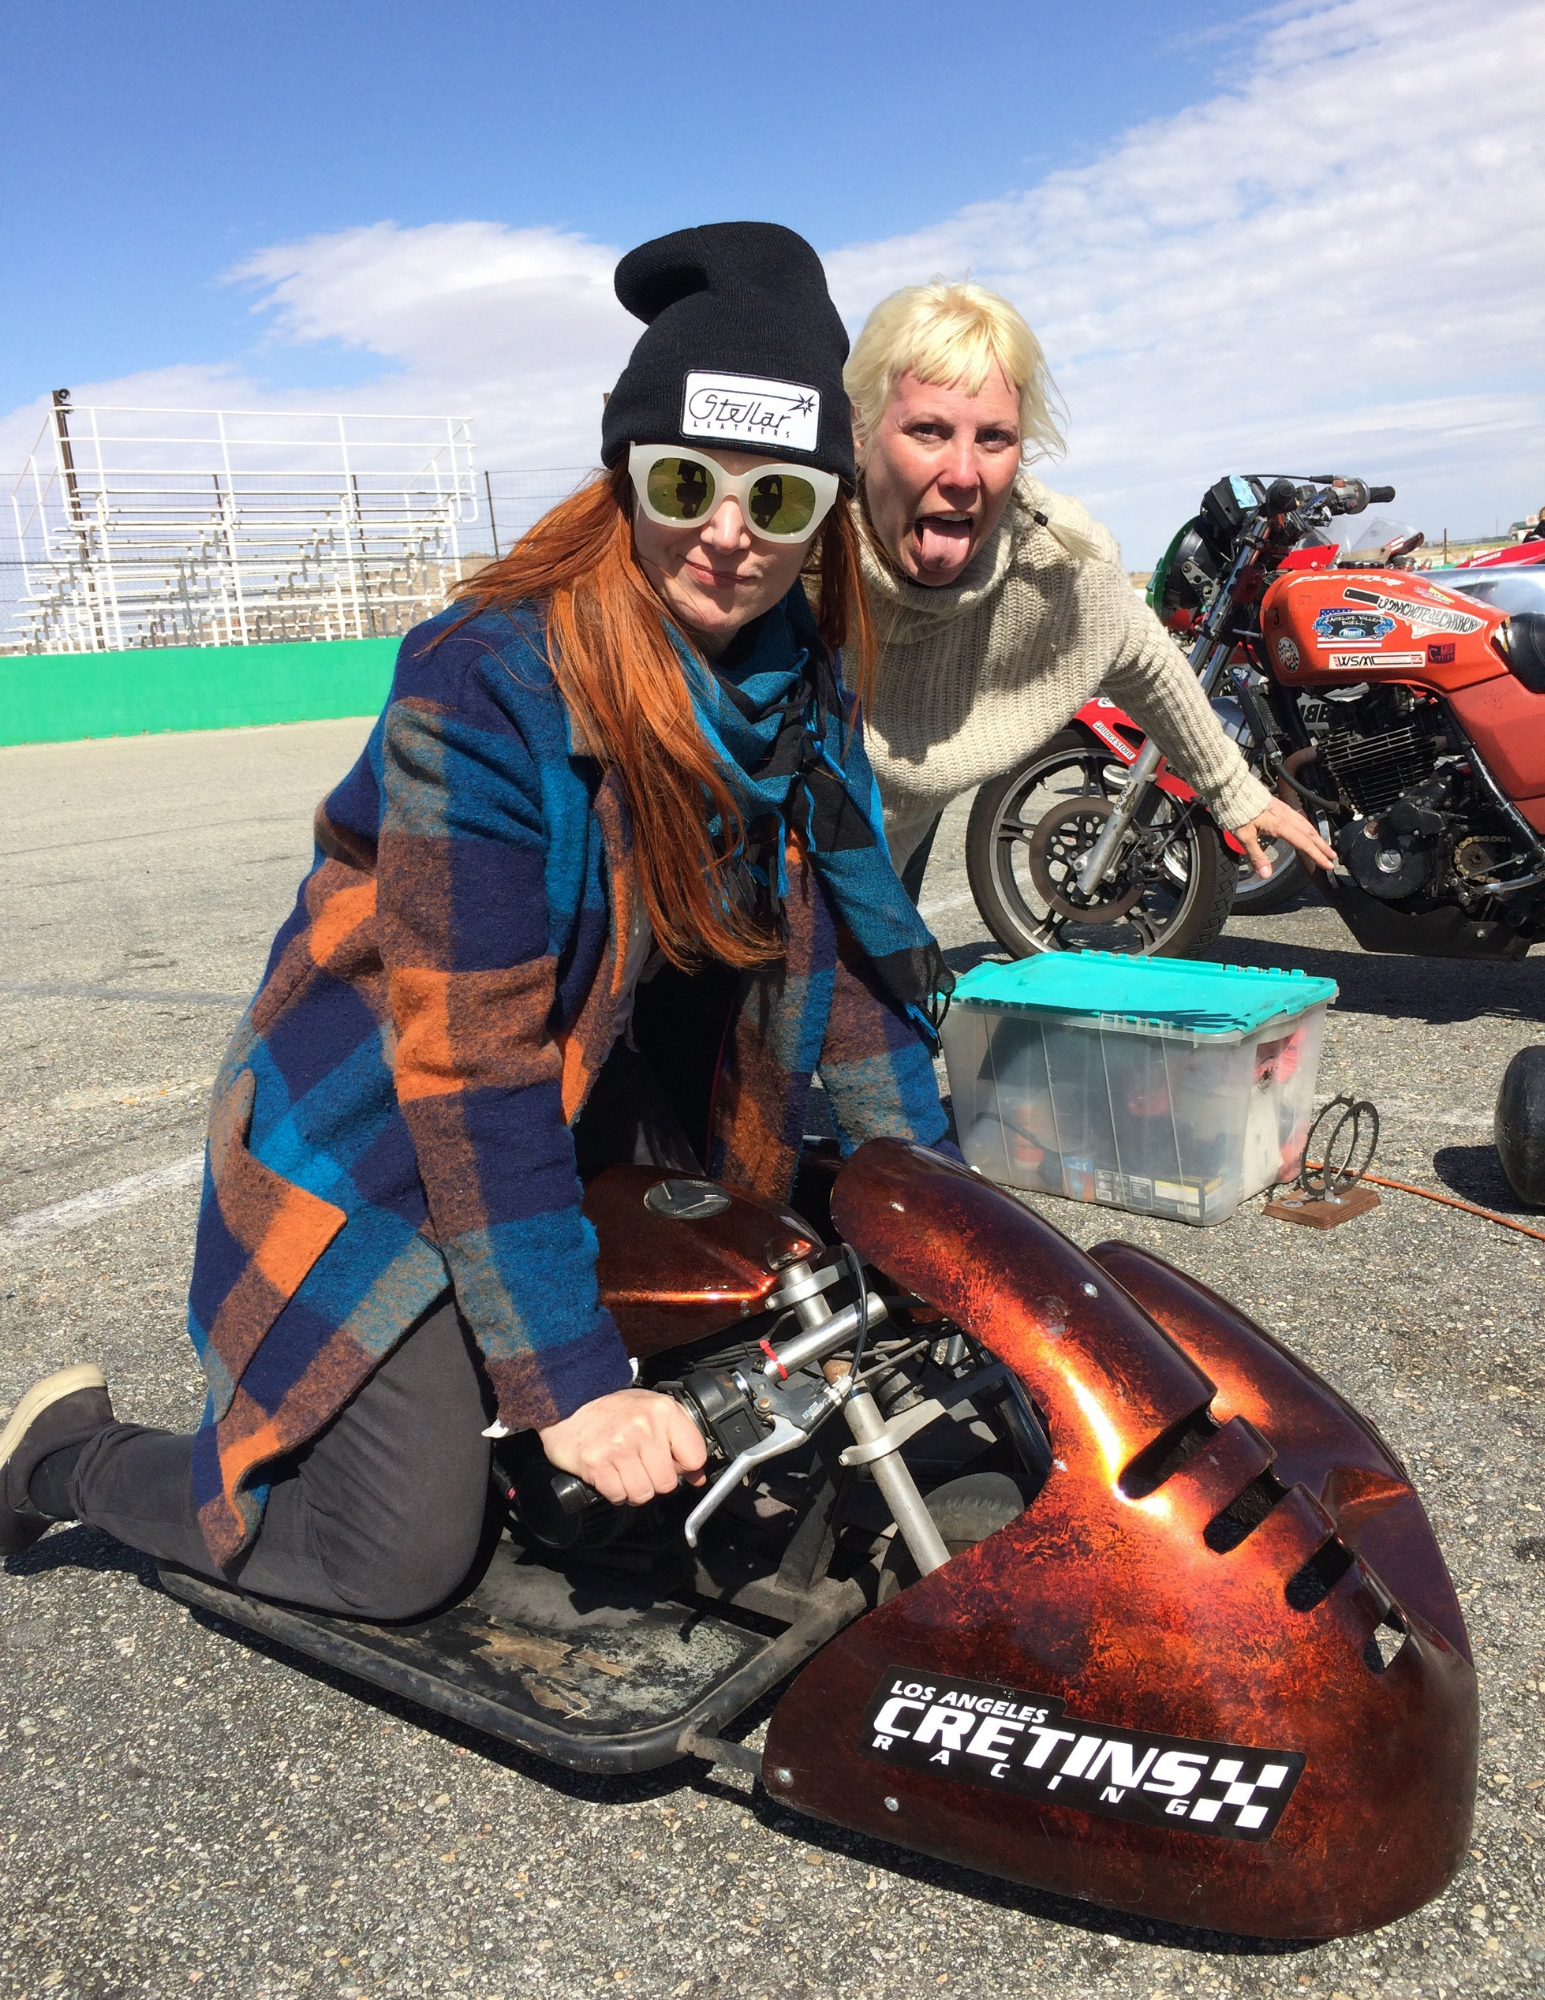 Two friends having fun at the race track